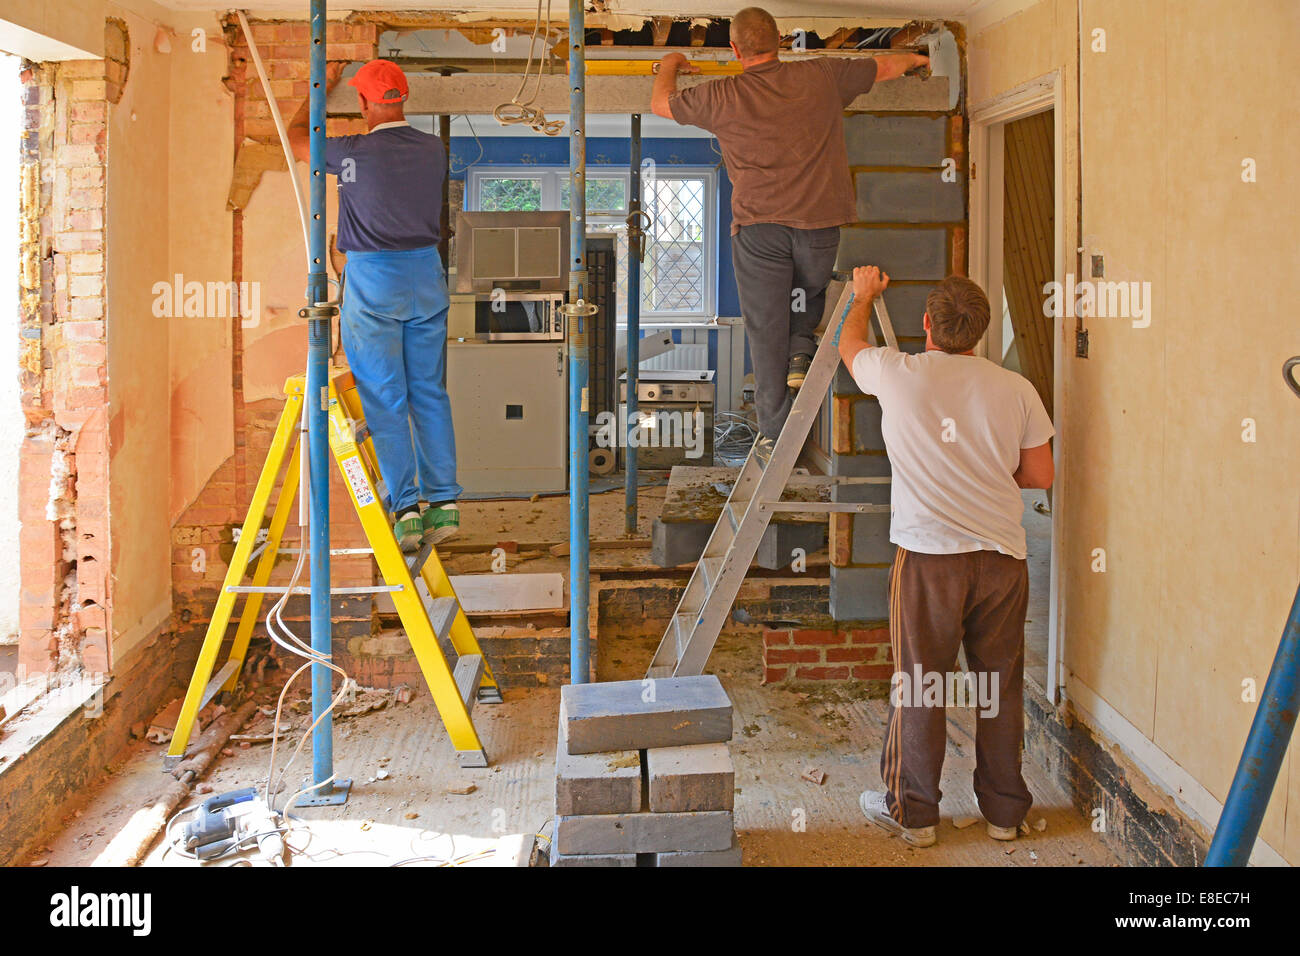 Builders at work install new lintel beam during major extension & alterations to detached house Brentwood Essex - Stock Image